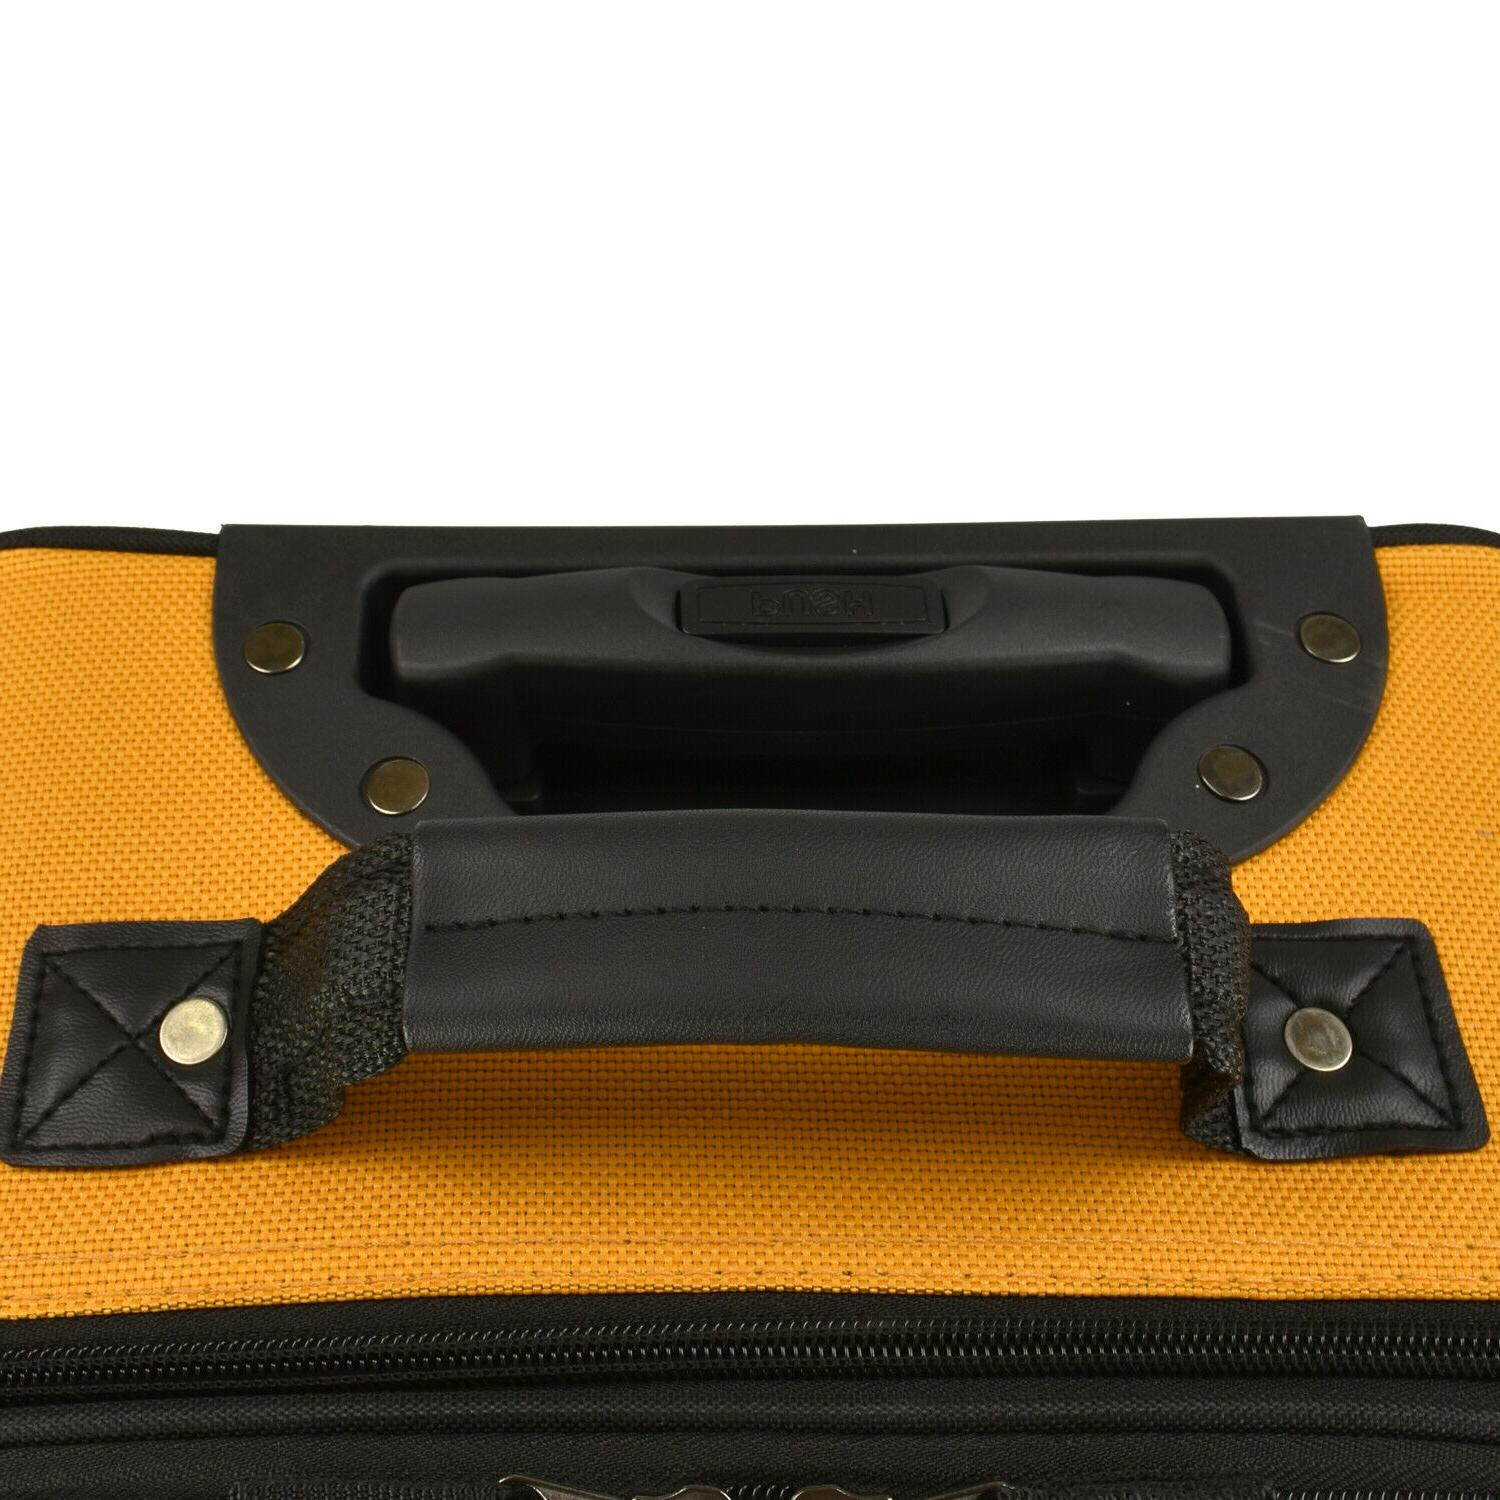 Carry-on Lightweight Suitcase Bag Luggage Set